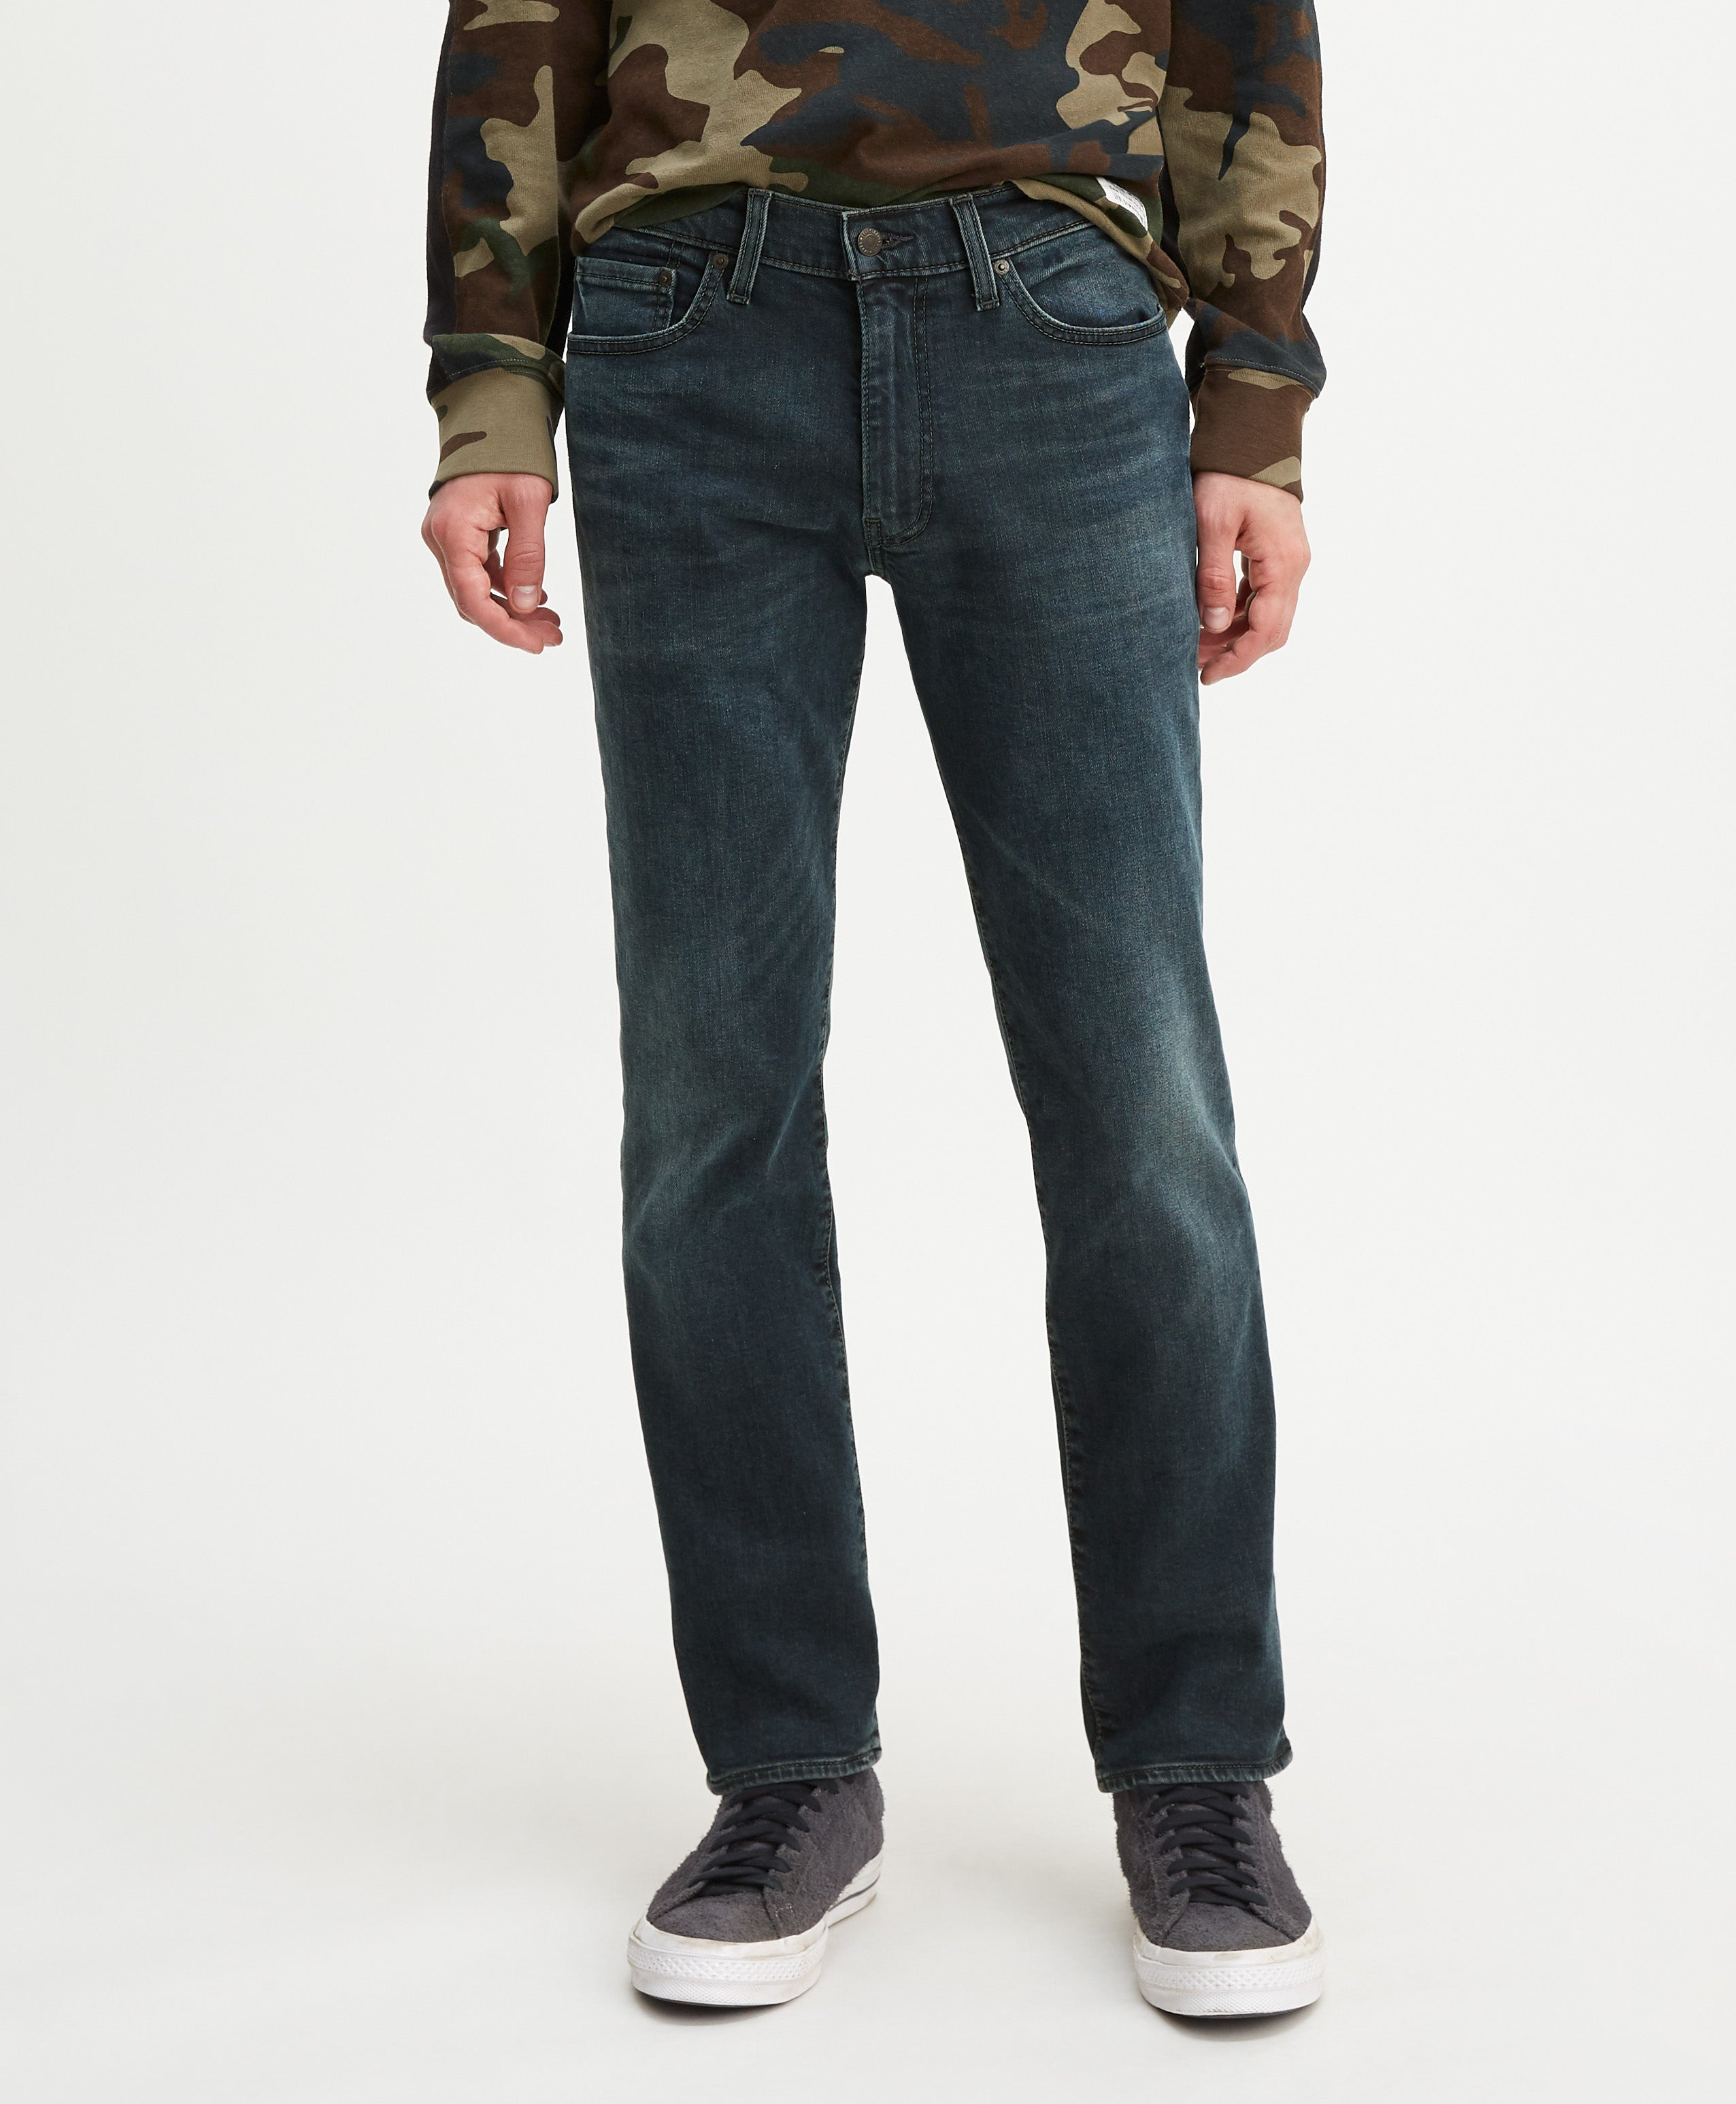 LEVIS M'S PANTS 511 SLIM FIT LEVI'S FLEX - ABU